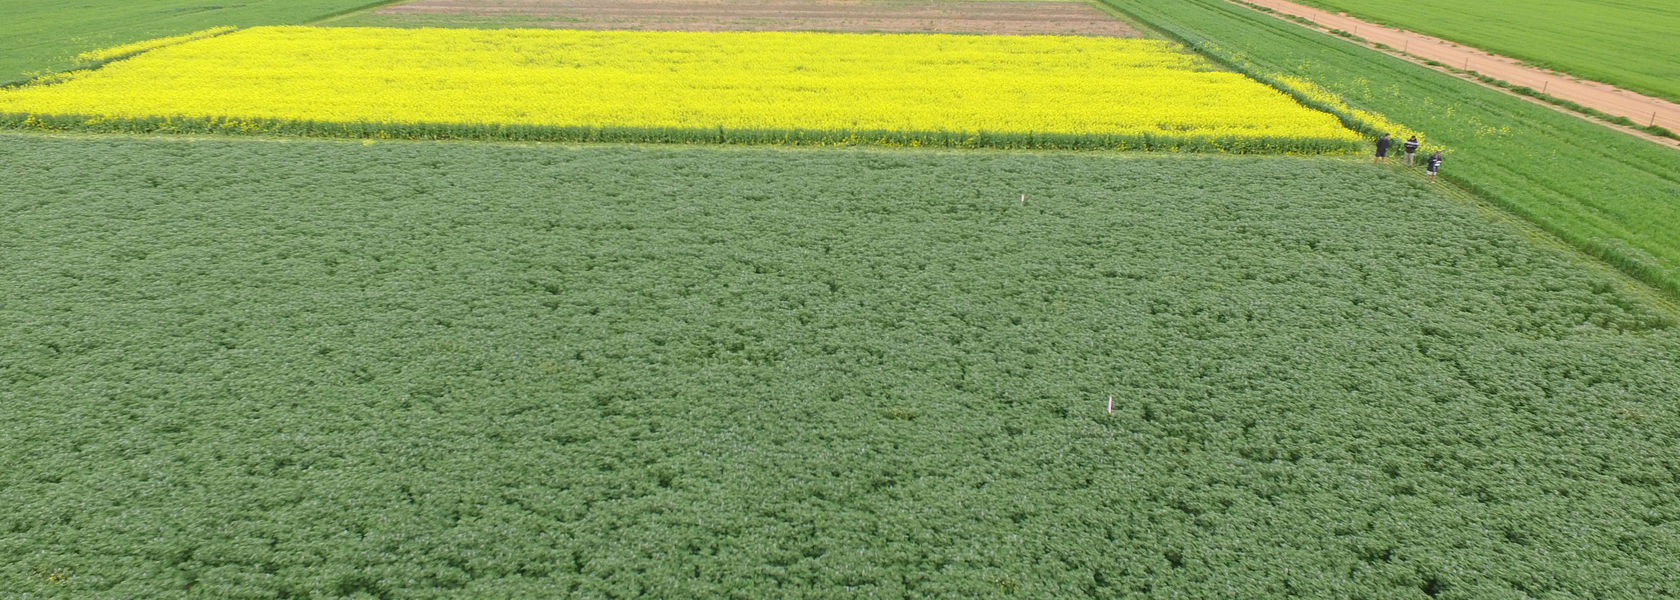 Long-term research yields some herbicide resistance answers